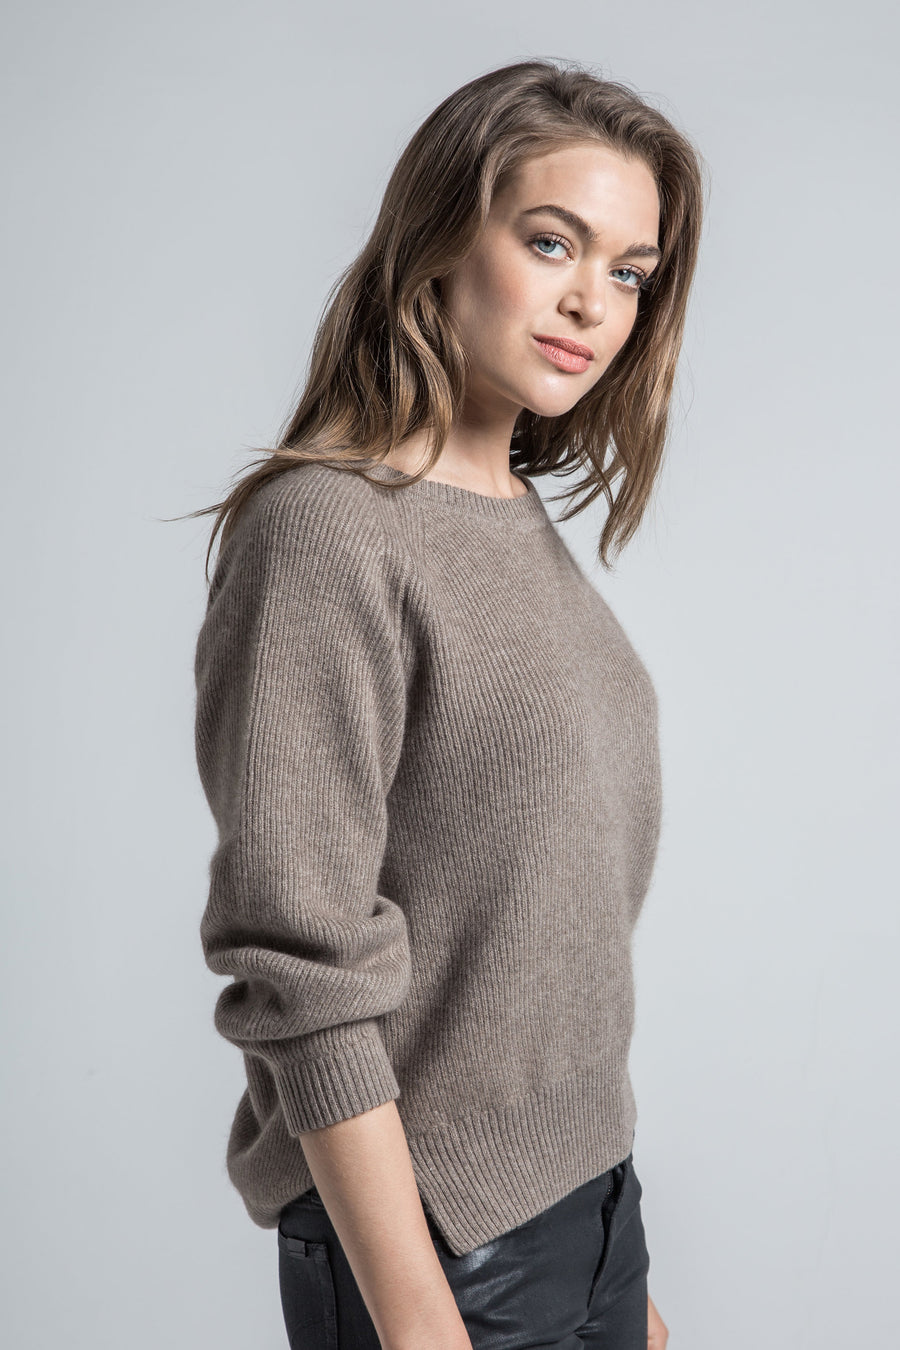 pine cashmere betsy trendy women's 100% pure organic cashmere crewneck sweater in brown